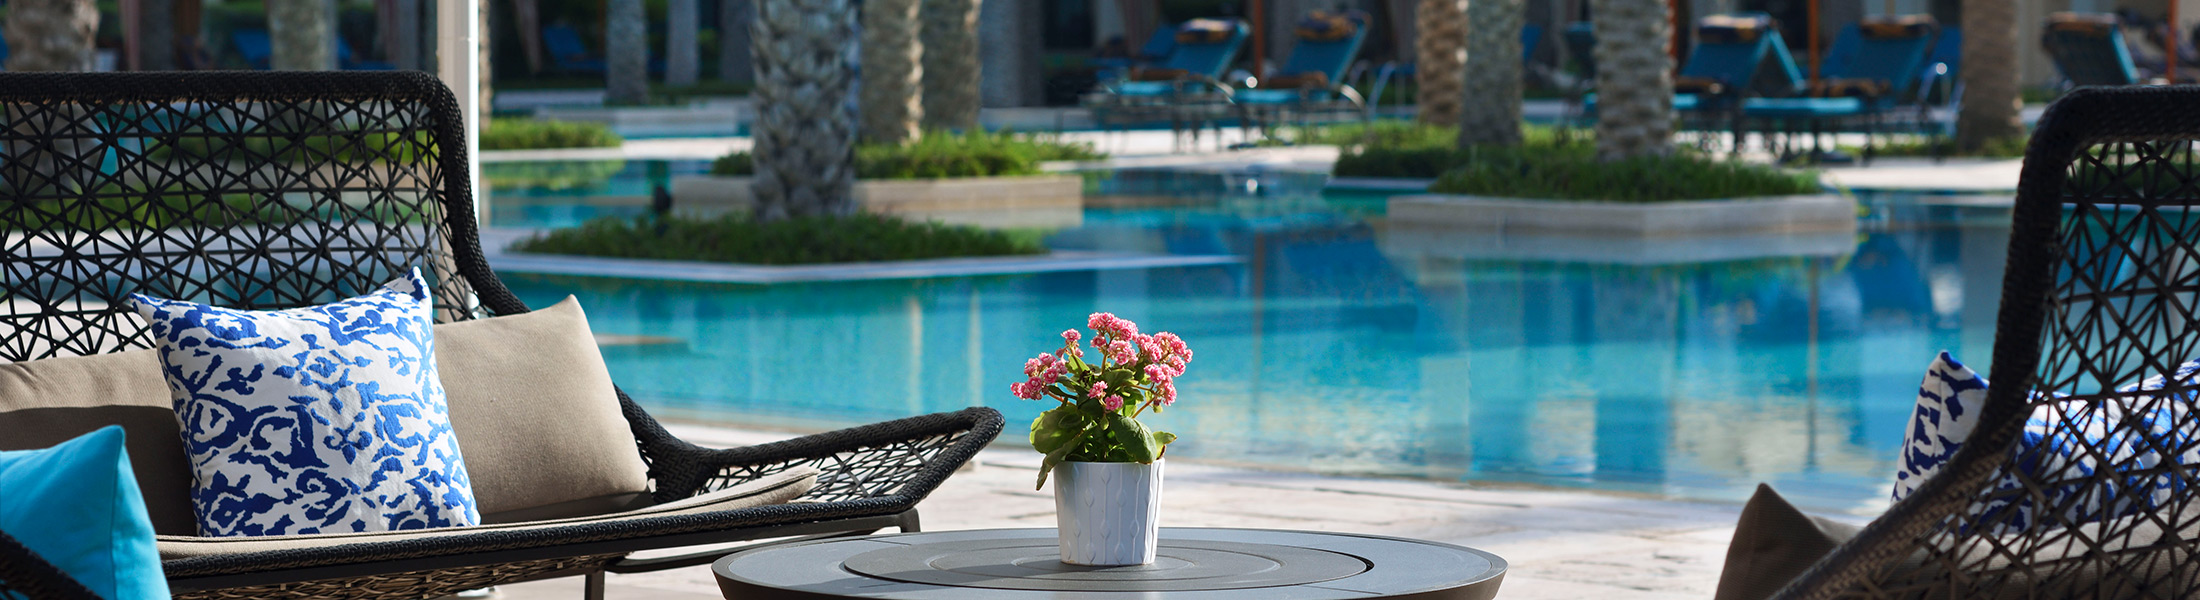 Poolside seating at One&Only Royal Mirage The Palace